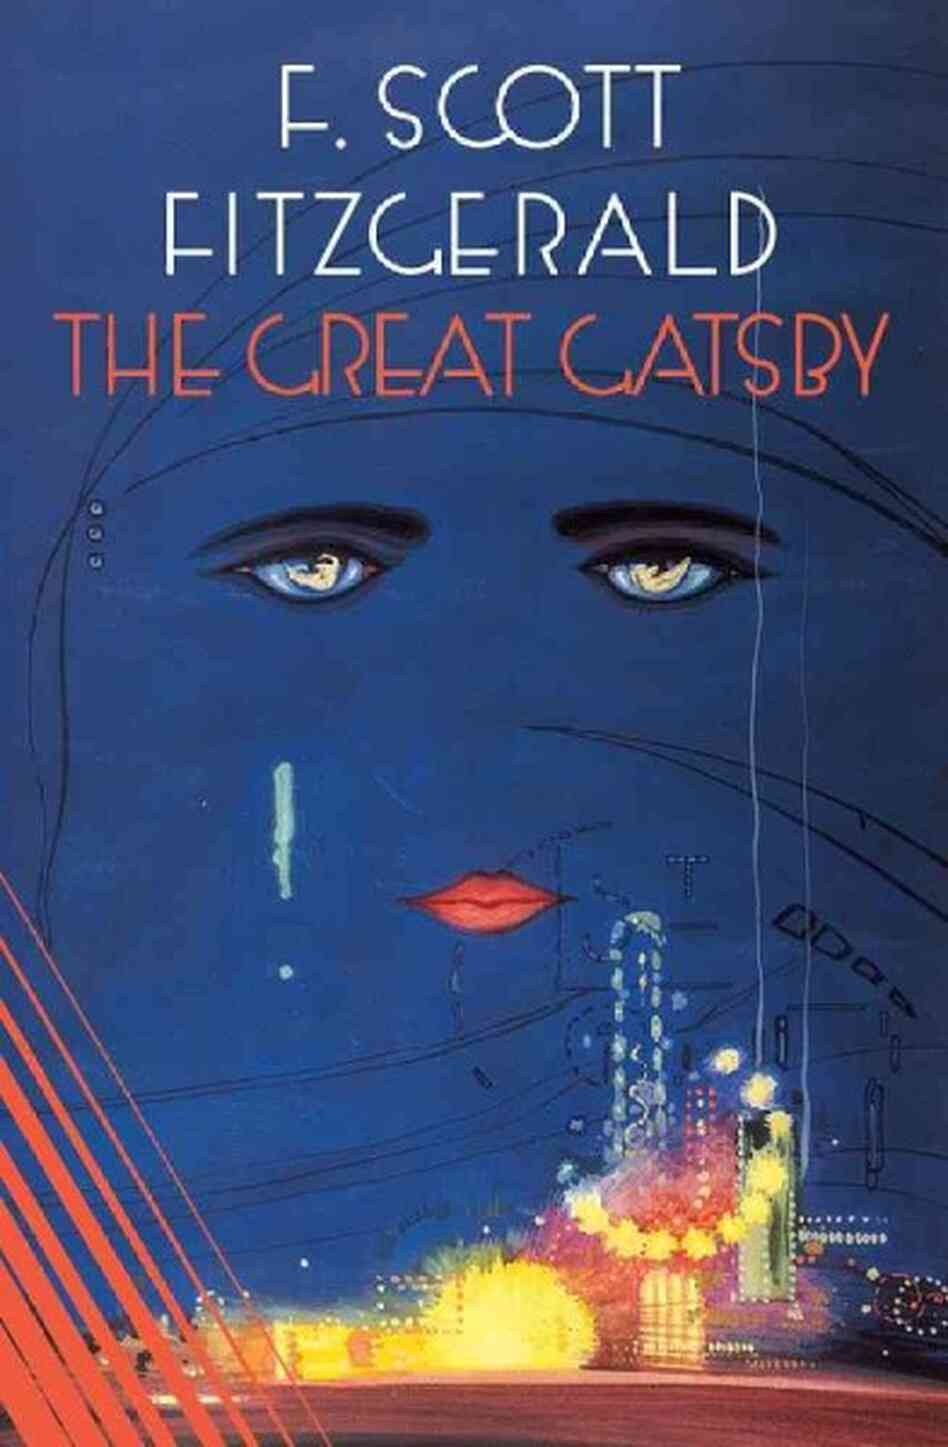 the great gatsby by fitzgerald 397 the great gatsby, f scott fitzgerald ap language teacher overview skill focus critical thinking remember understand apply analyze evaluate create.